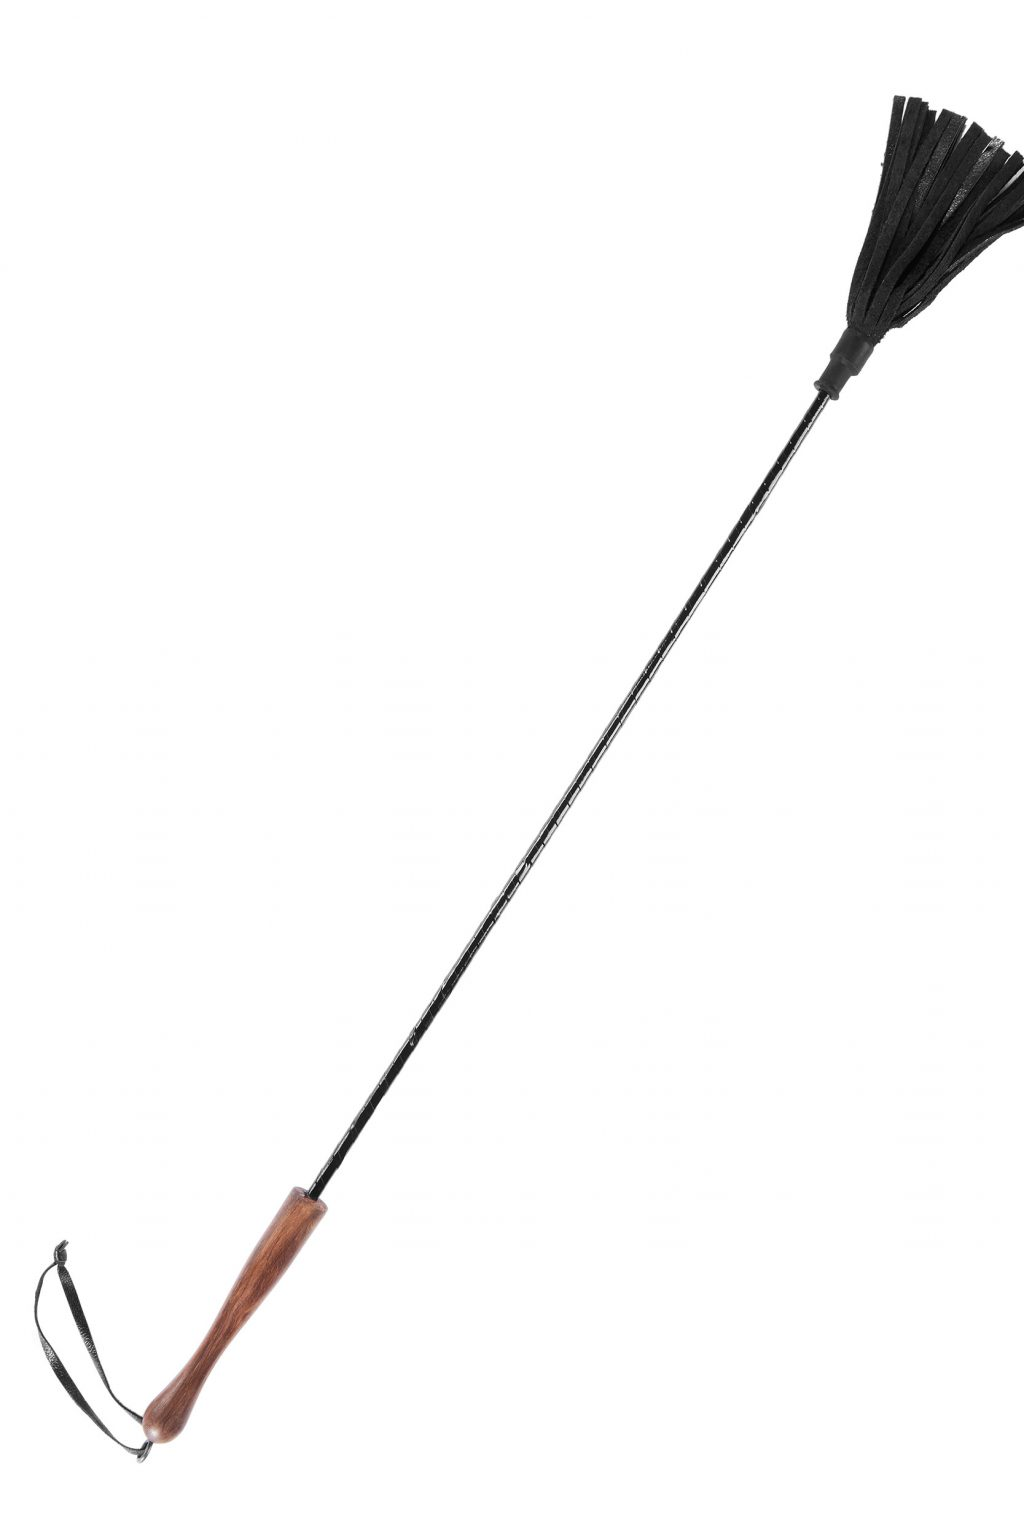 Obey Me - Riding Crop with Wood Handle